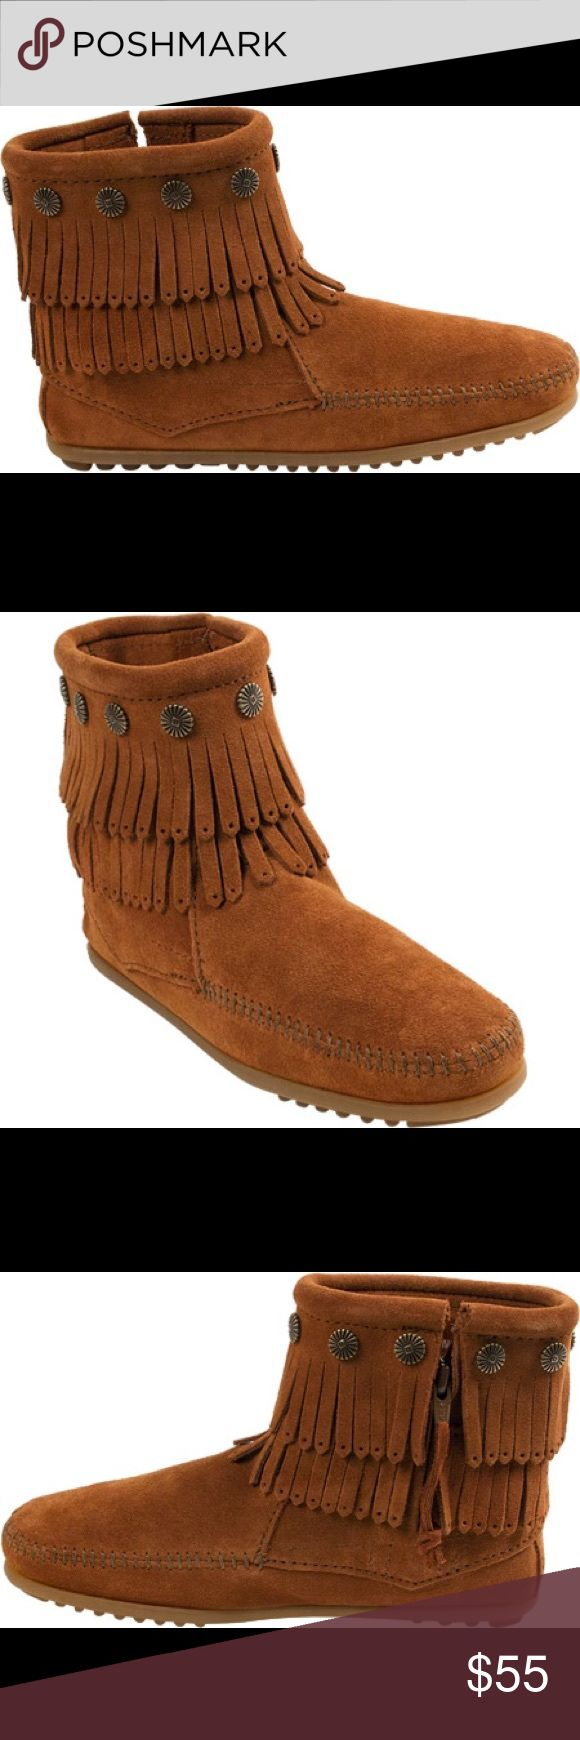 Minnetonka Double Fringe Classic Mocassin Boot What a classic. Never worn outdoors! These fringe side zip boots will keep your feet looking oh so fashionable this season. With metal conchos and a lightweight rubber sole these ankle boots look great with just a pair of jeans and a t shirt. Or pair with long or mini skirt to dress up a little.  Literally can be matched with almost any outfit. Fabulous gift!  #Mocassin boogie Minnetonka Shoes Winter & Rain Boots